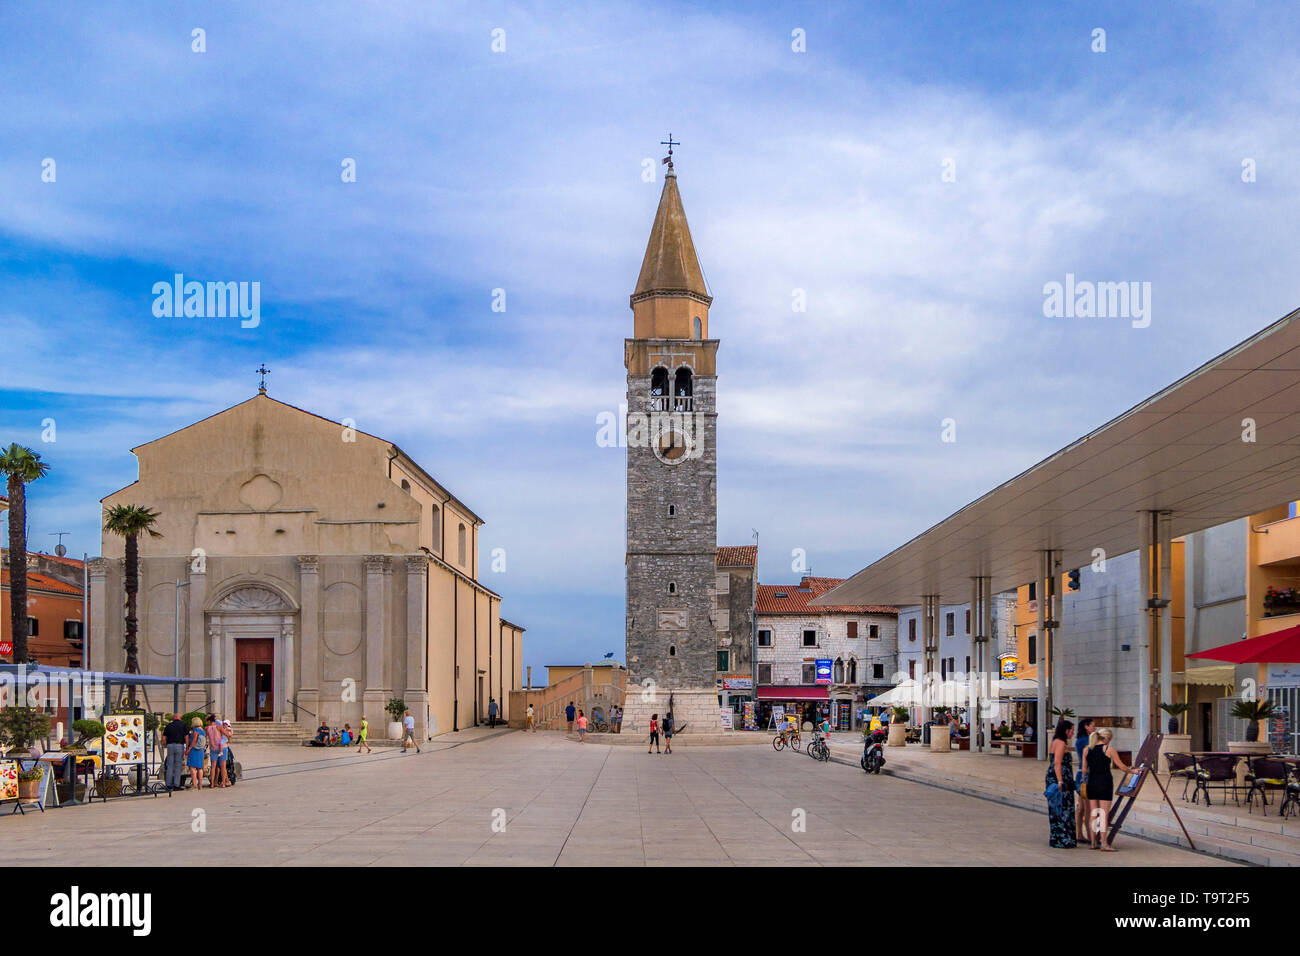 Parish church of Holy Maria in the Piazza Slobode Liberta, Umag, Istrien, Croatia, Europe, Pfarrkirche der Hl. Maria an der Piazza Slobode Liberta, Kr - Stock Image